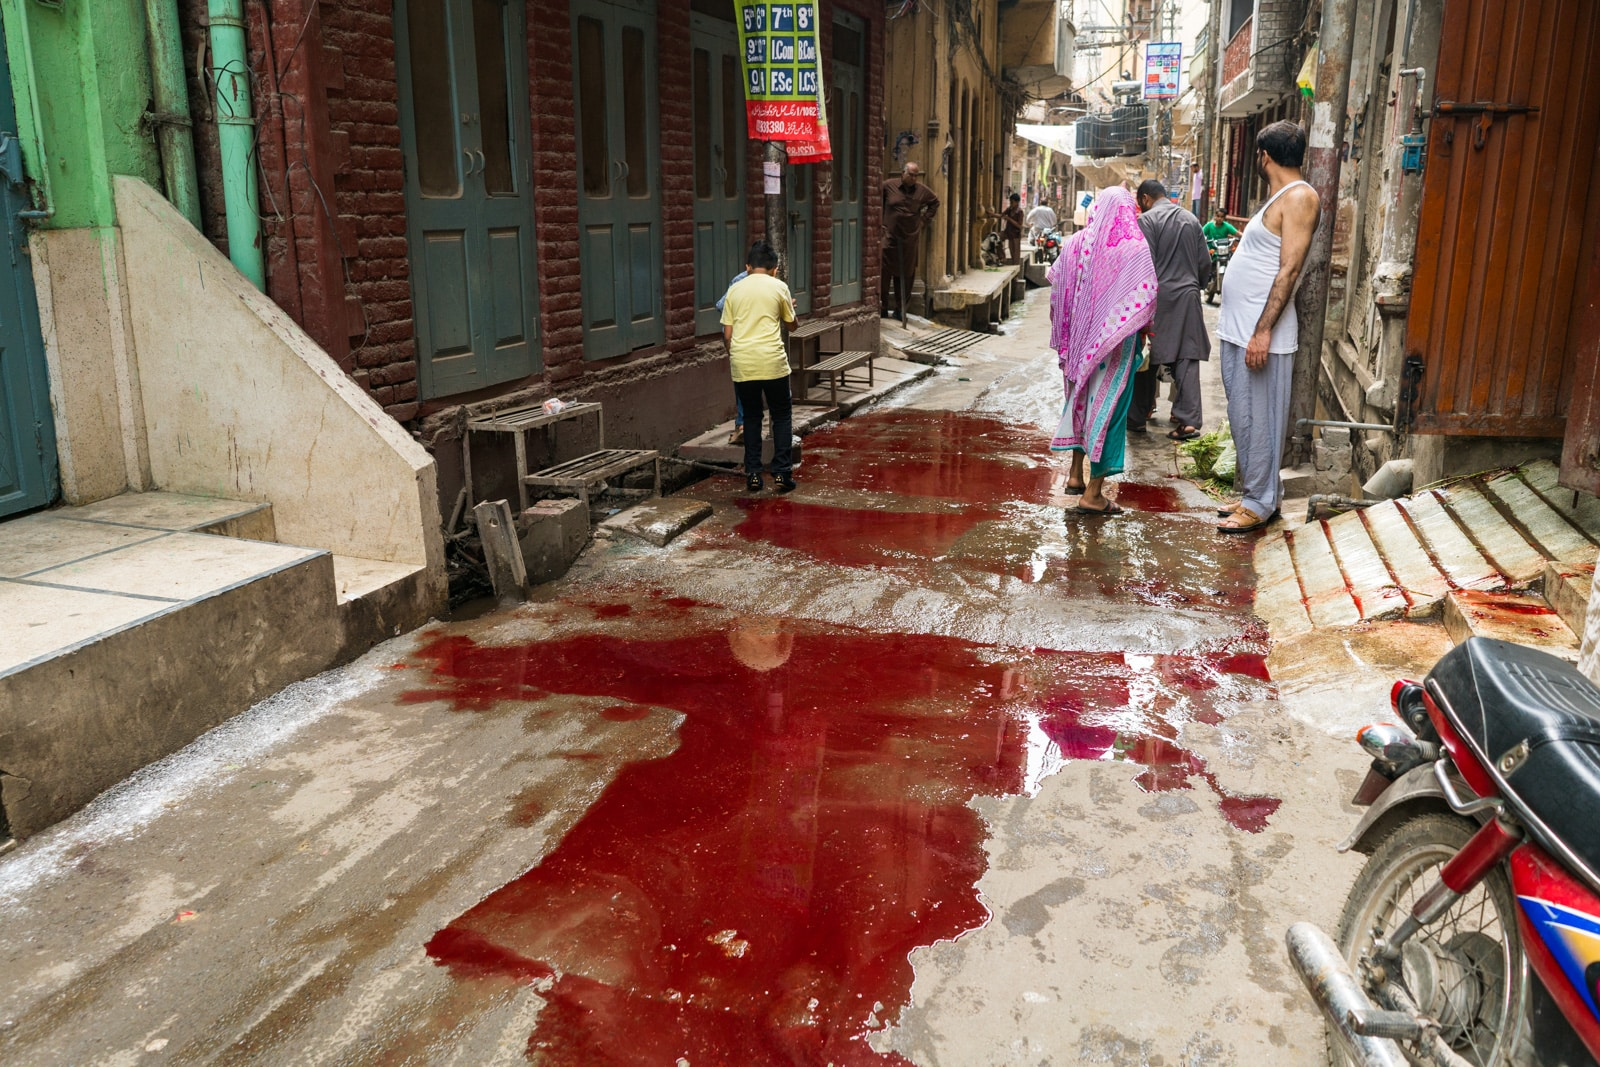 Celebrating Eid al-Adha in Lahore, Pakistan - Blood puddles on the streets - Lost With Purpose travel blog